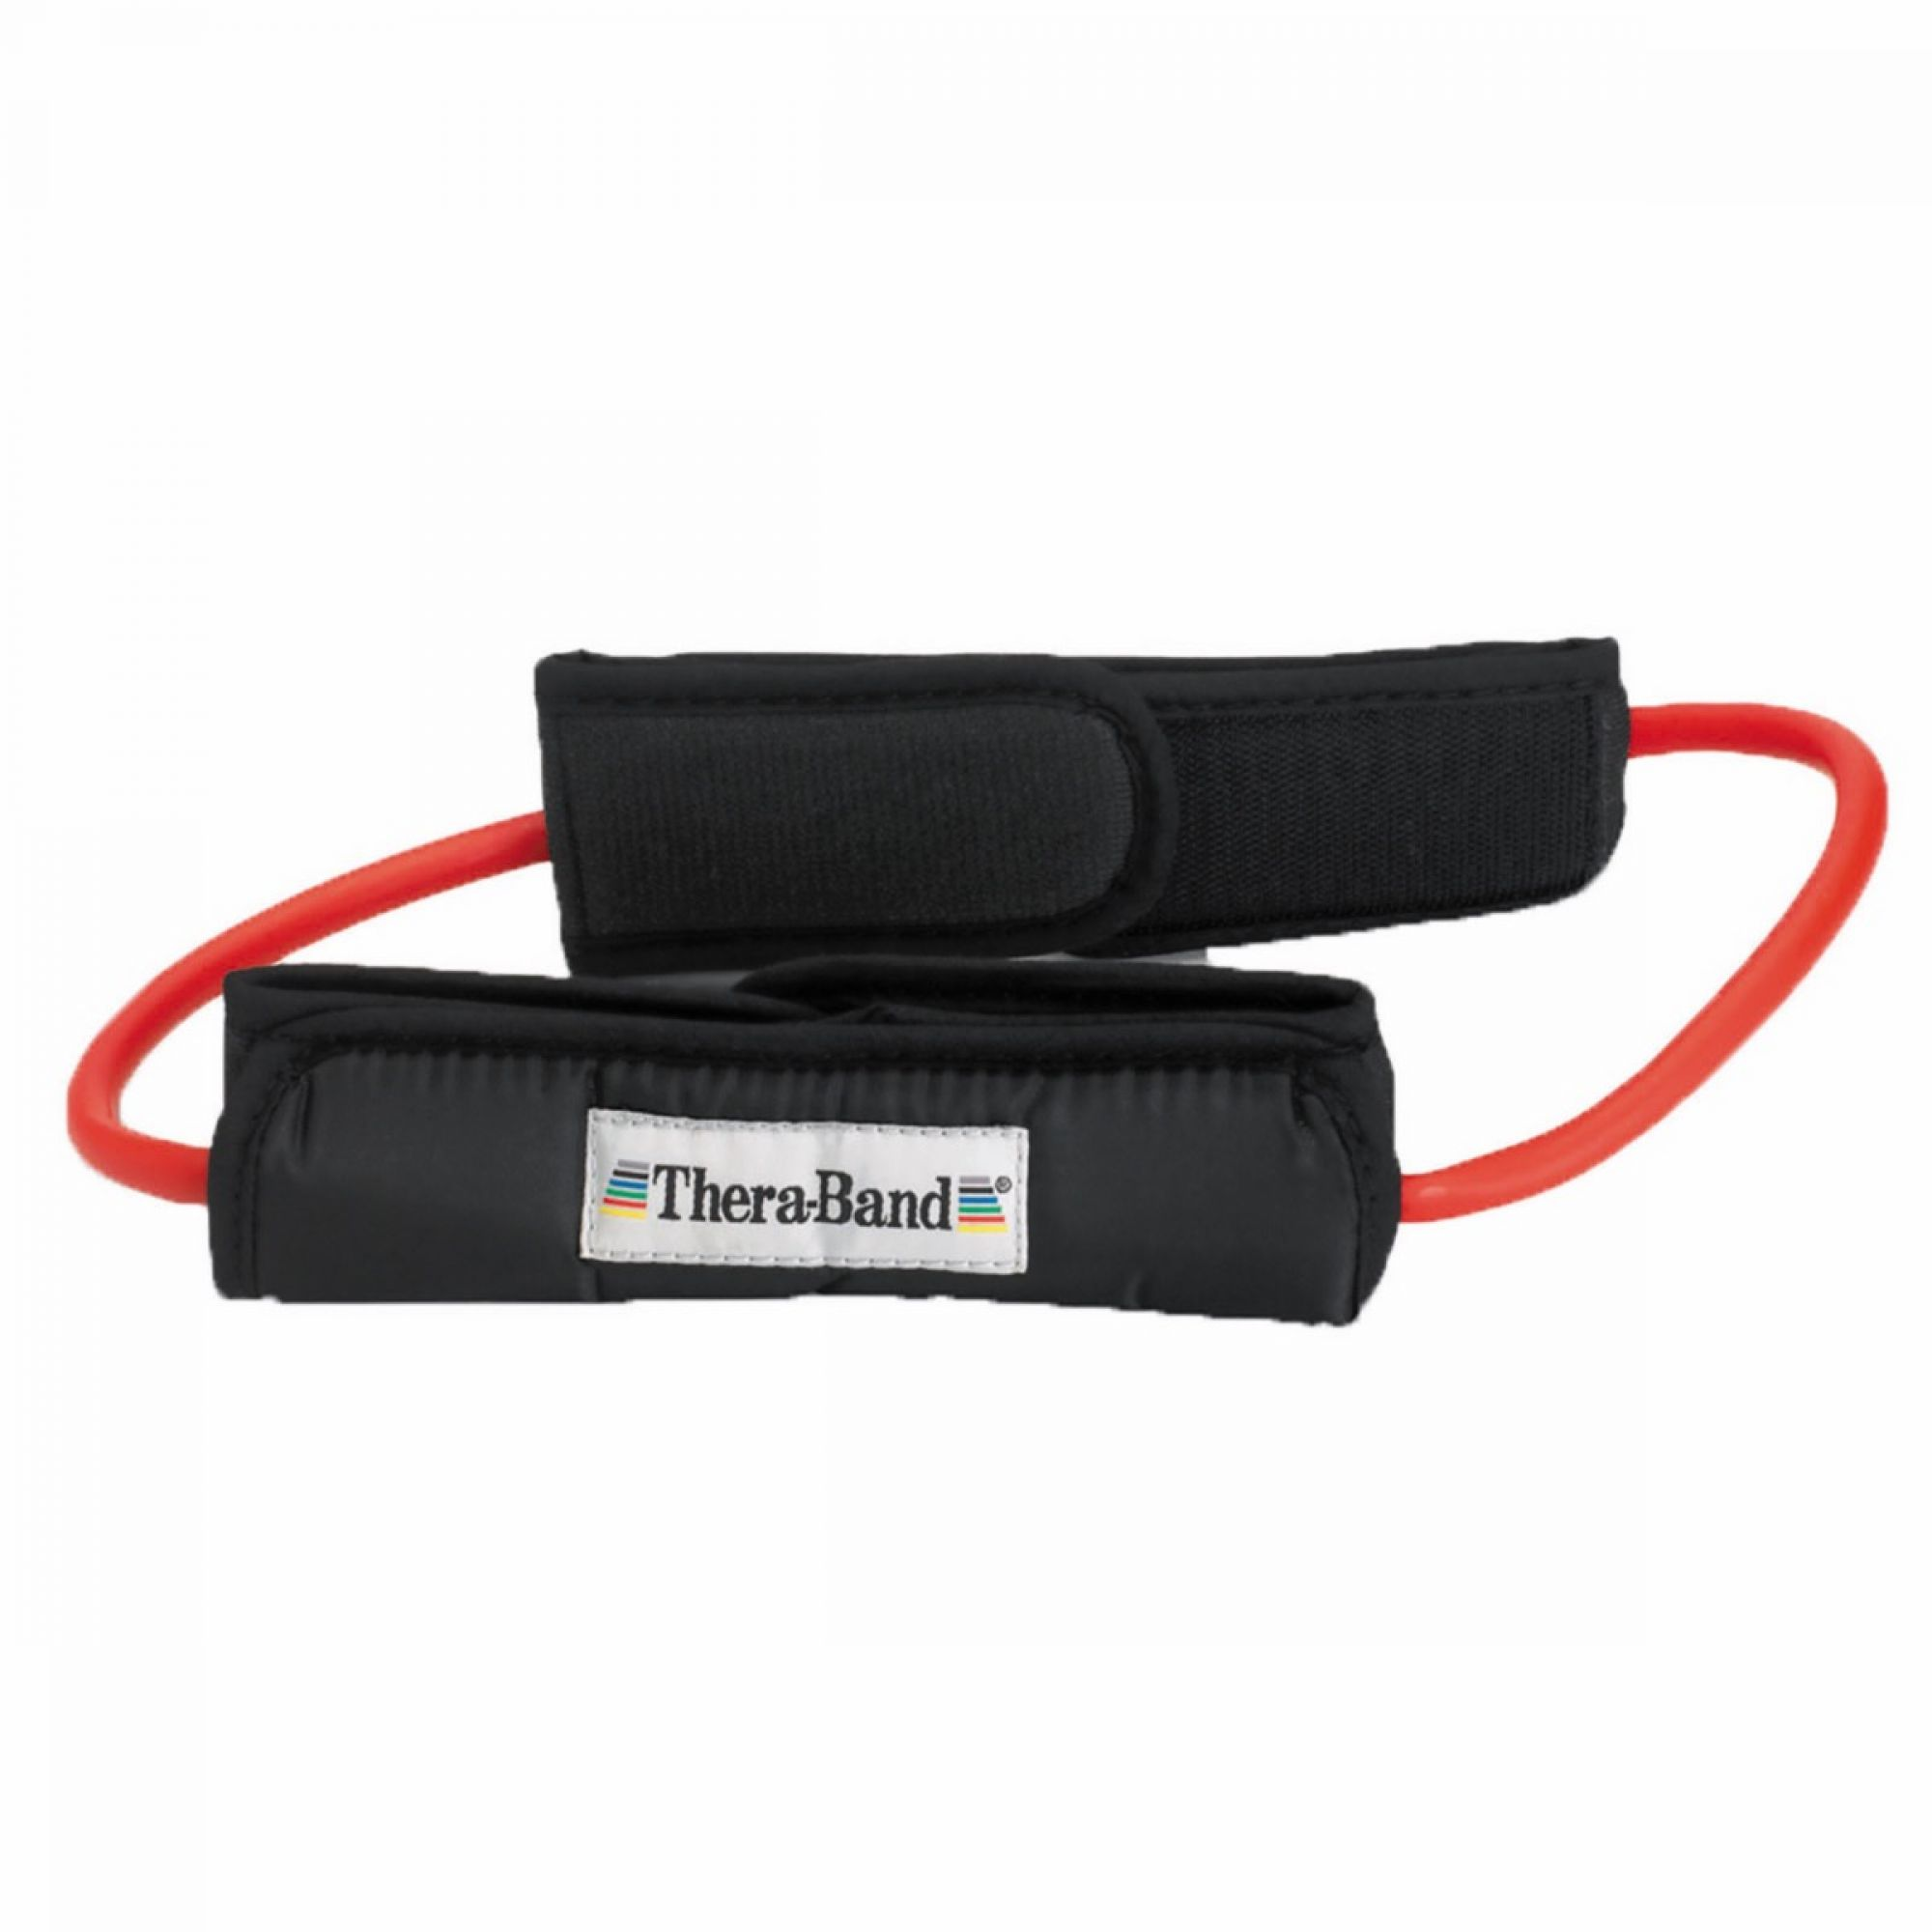 Theraband Resistance Tubing Padded Cuff